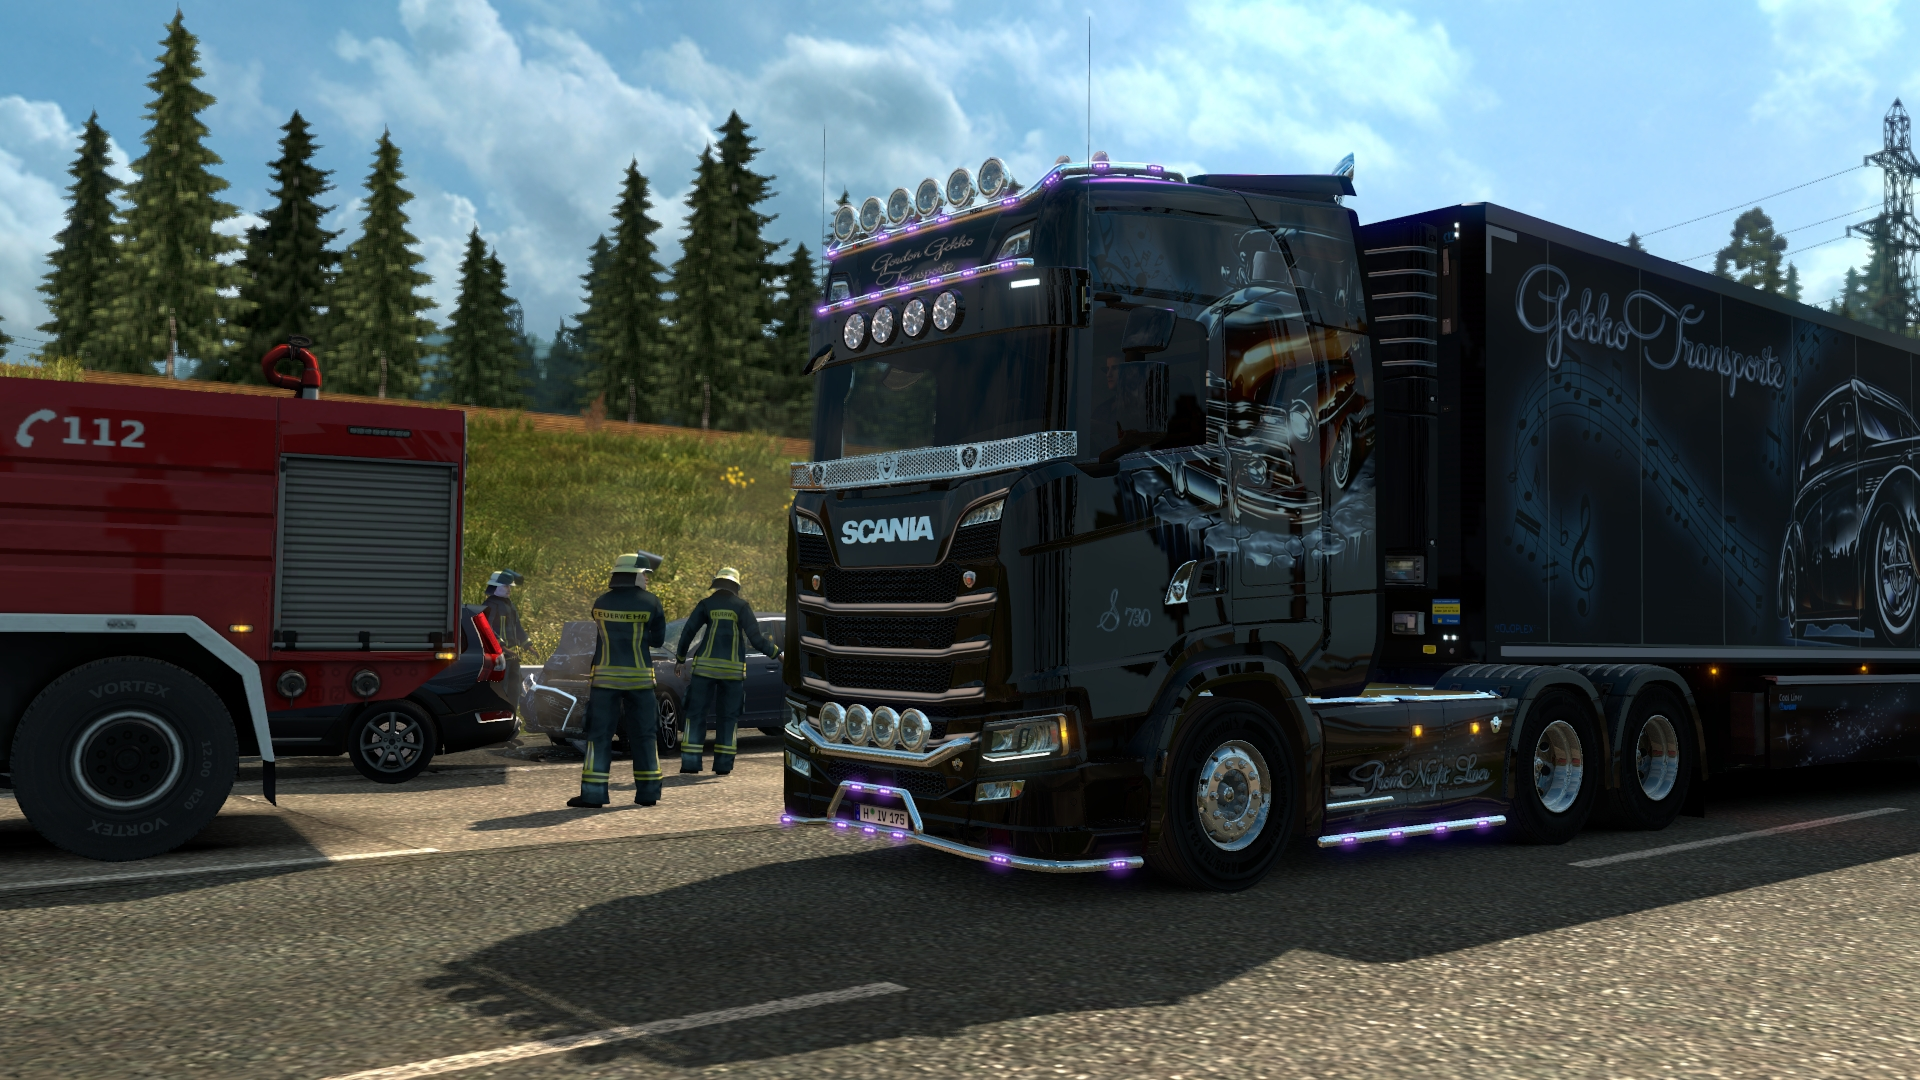 Screenshots - Seite 3 Ets2_20180506_185354_xjuat